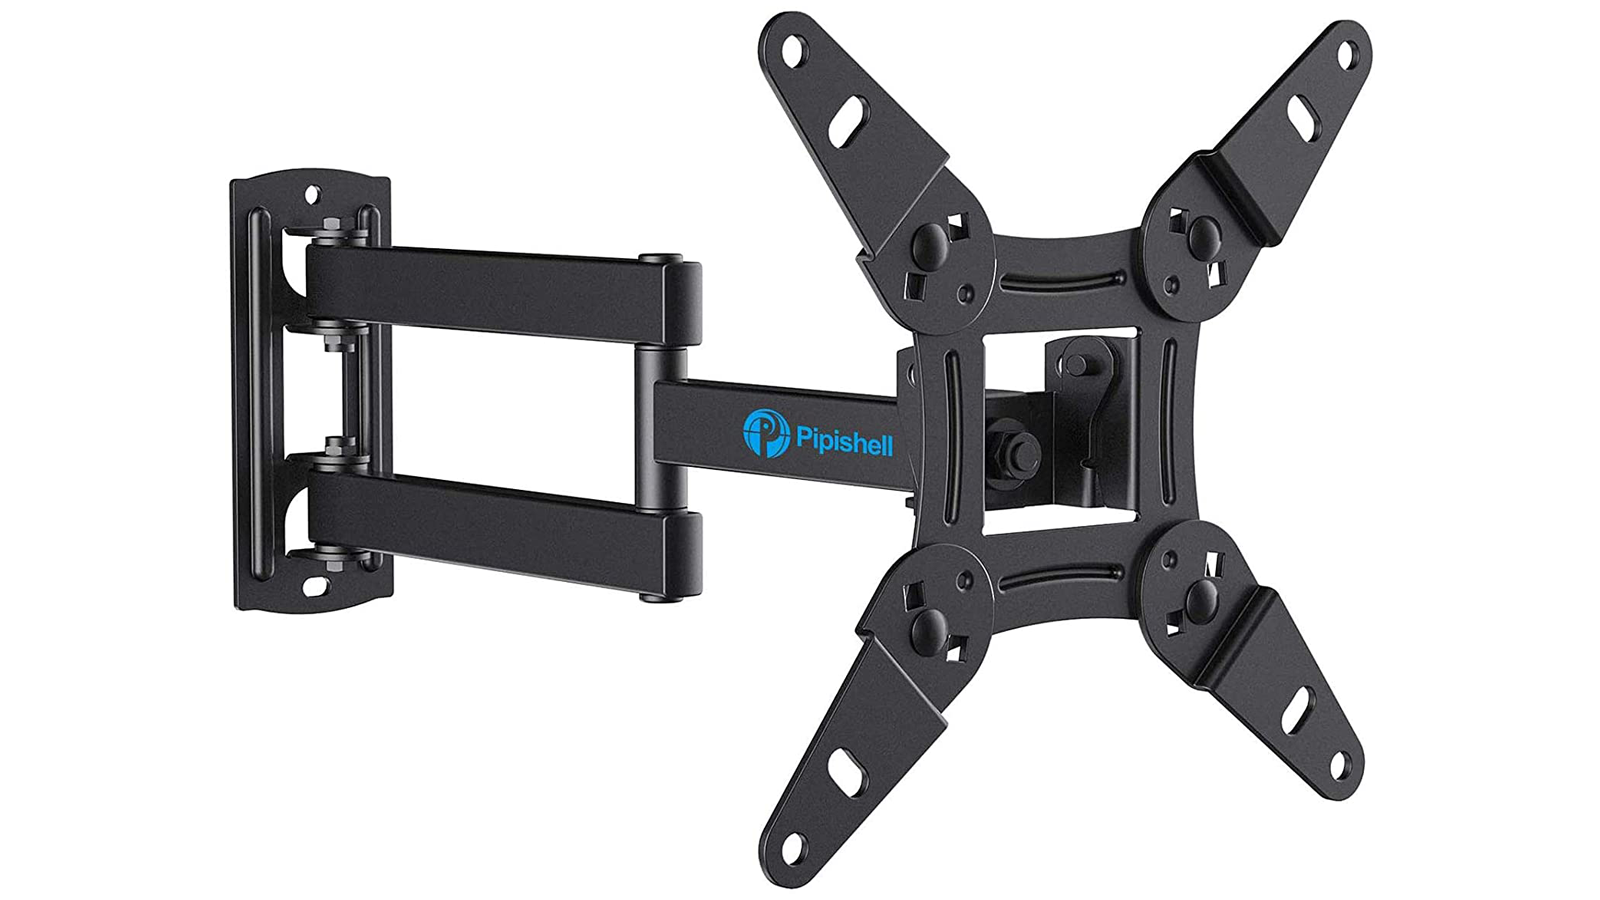 Upgrade Your TV or Monitor Setup with This Articulating Wall Mount Bracket